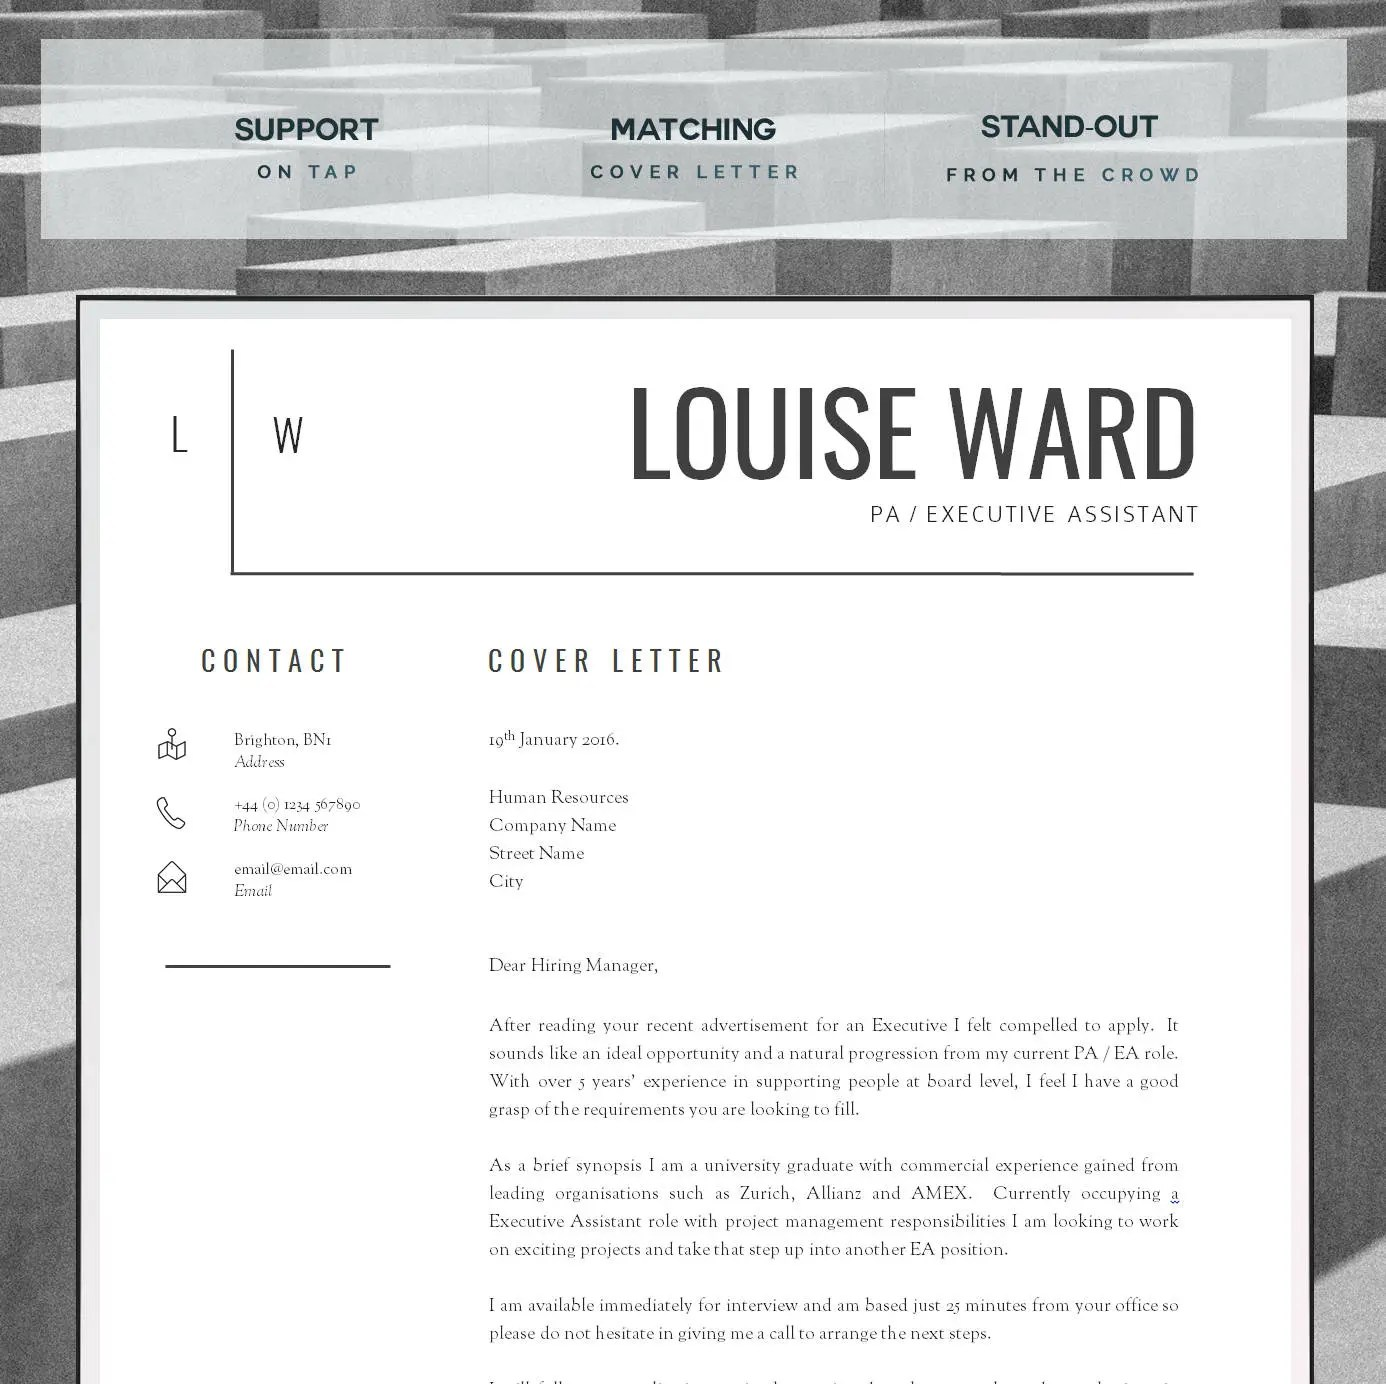 Resume Template CV Template Cover Letter Resume Advice - what is a cover letter in a resume